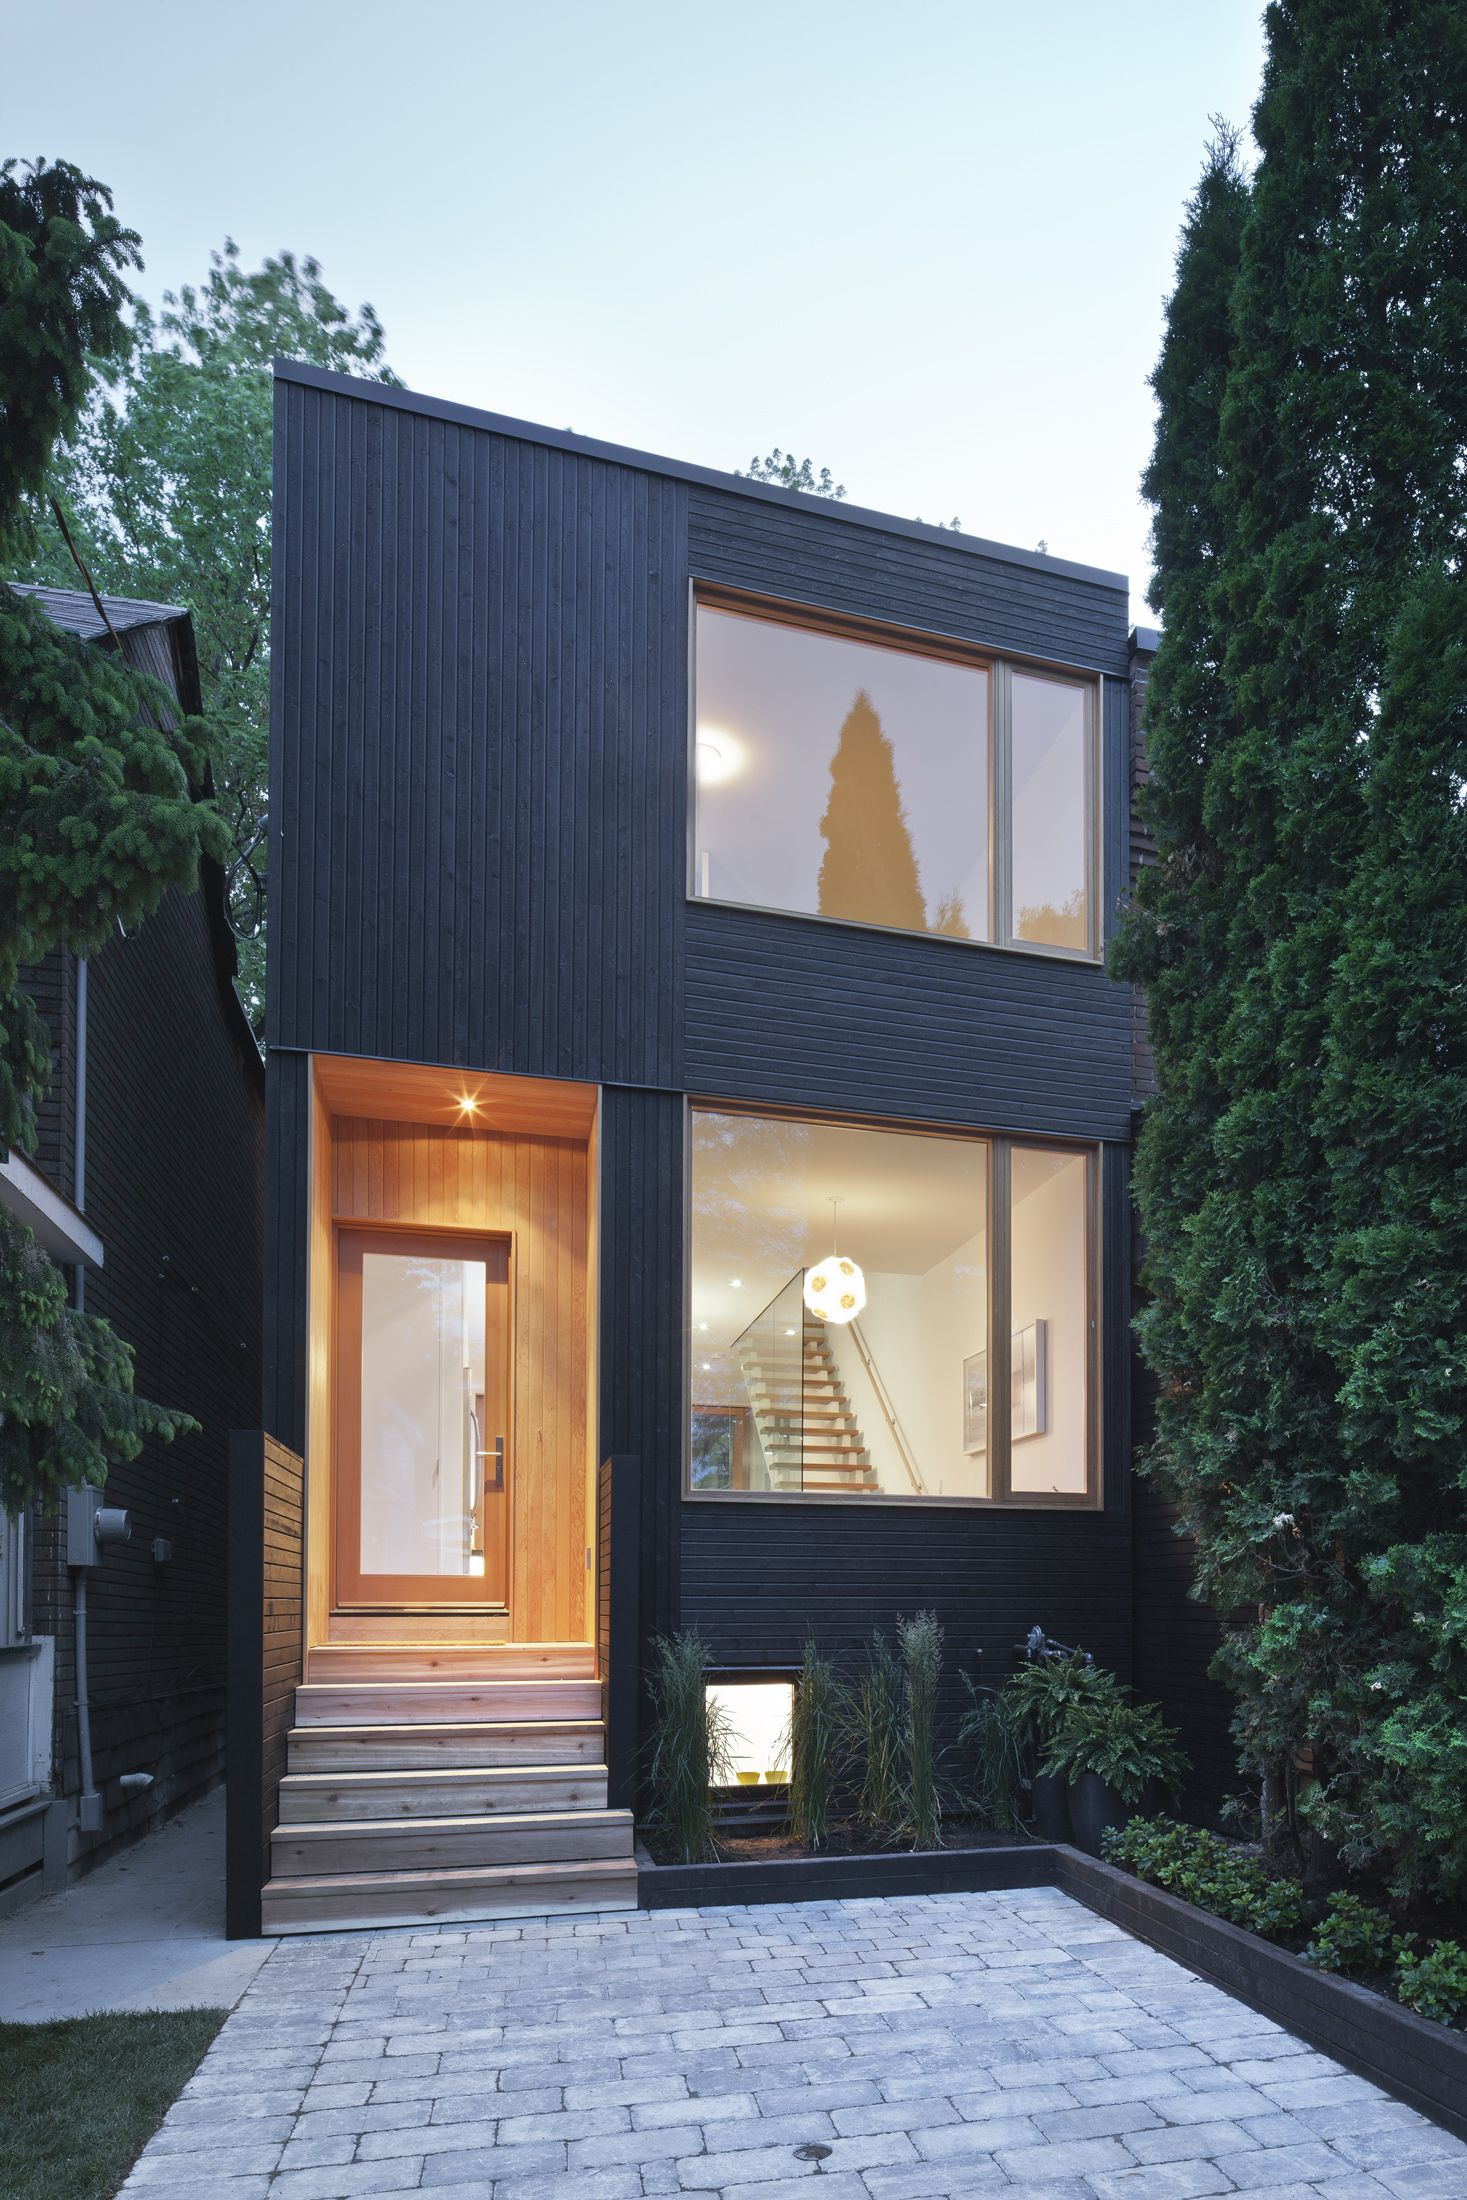 An affordable modern toronto house modernest one kyra for Affordable modern home designs